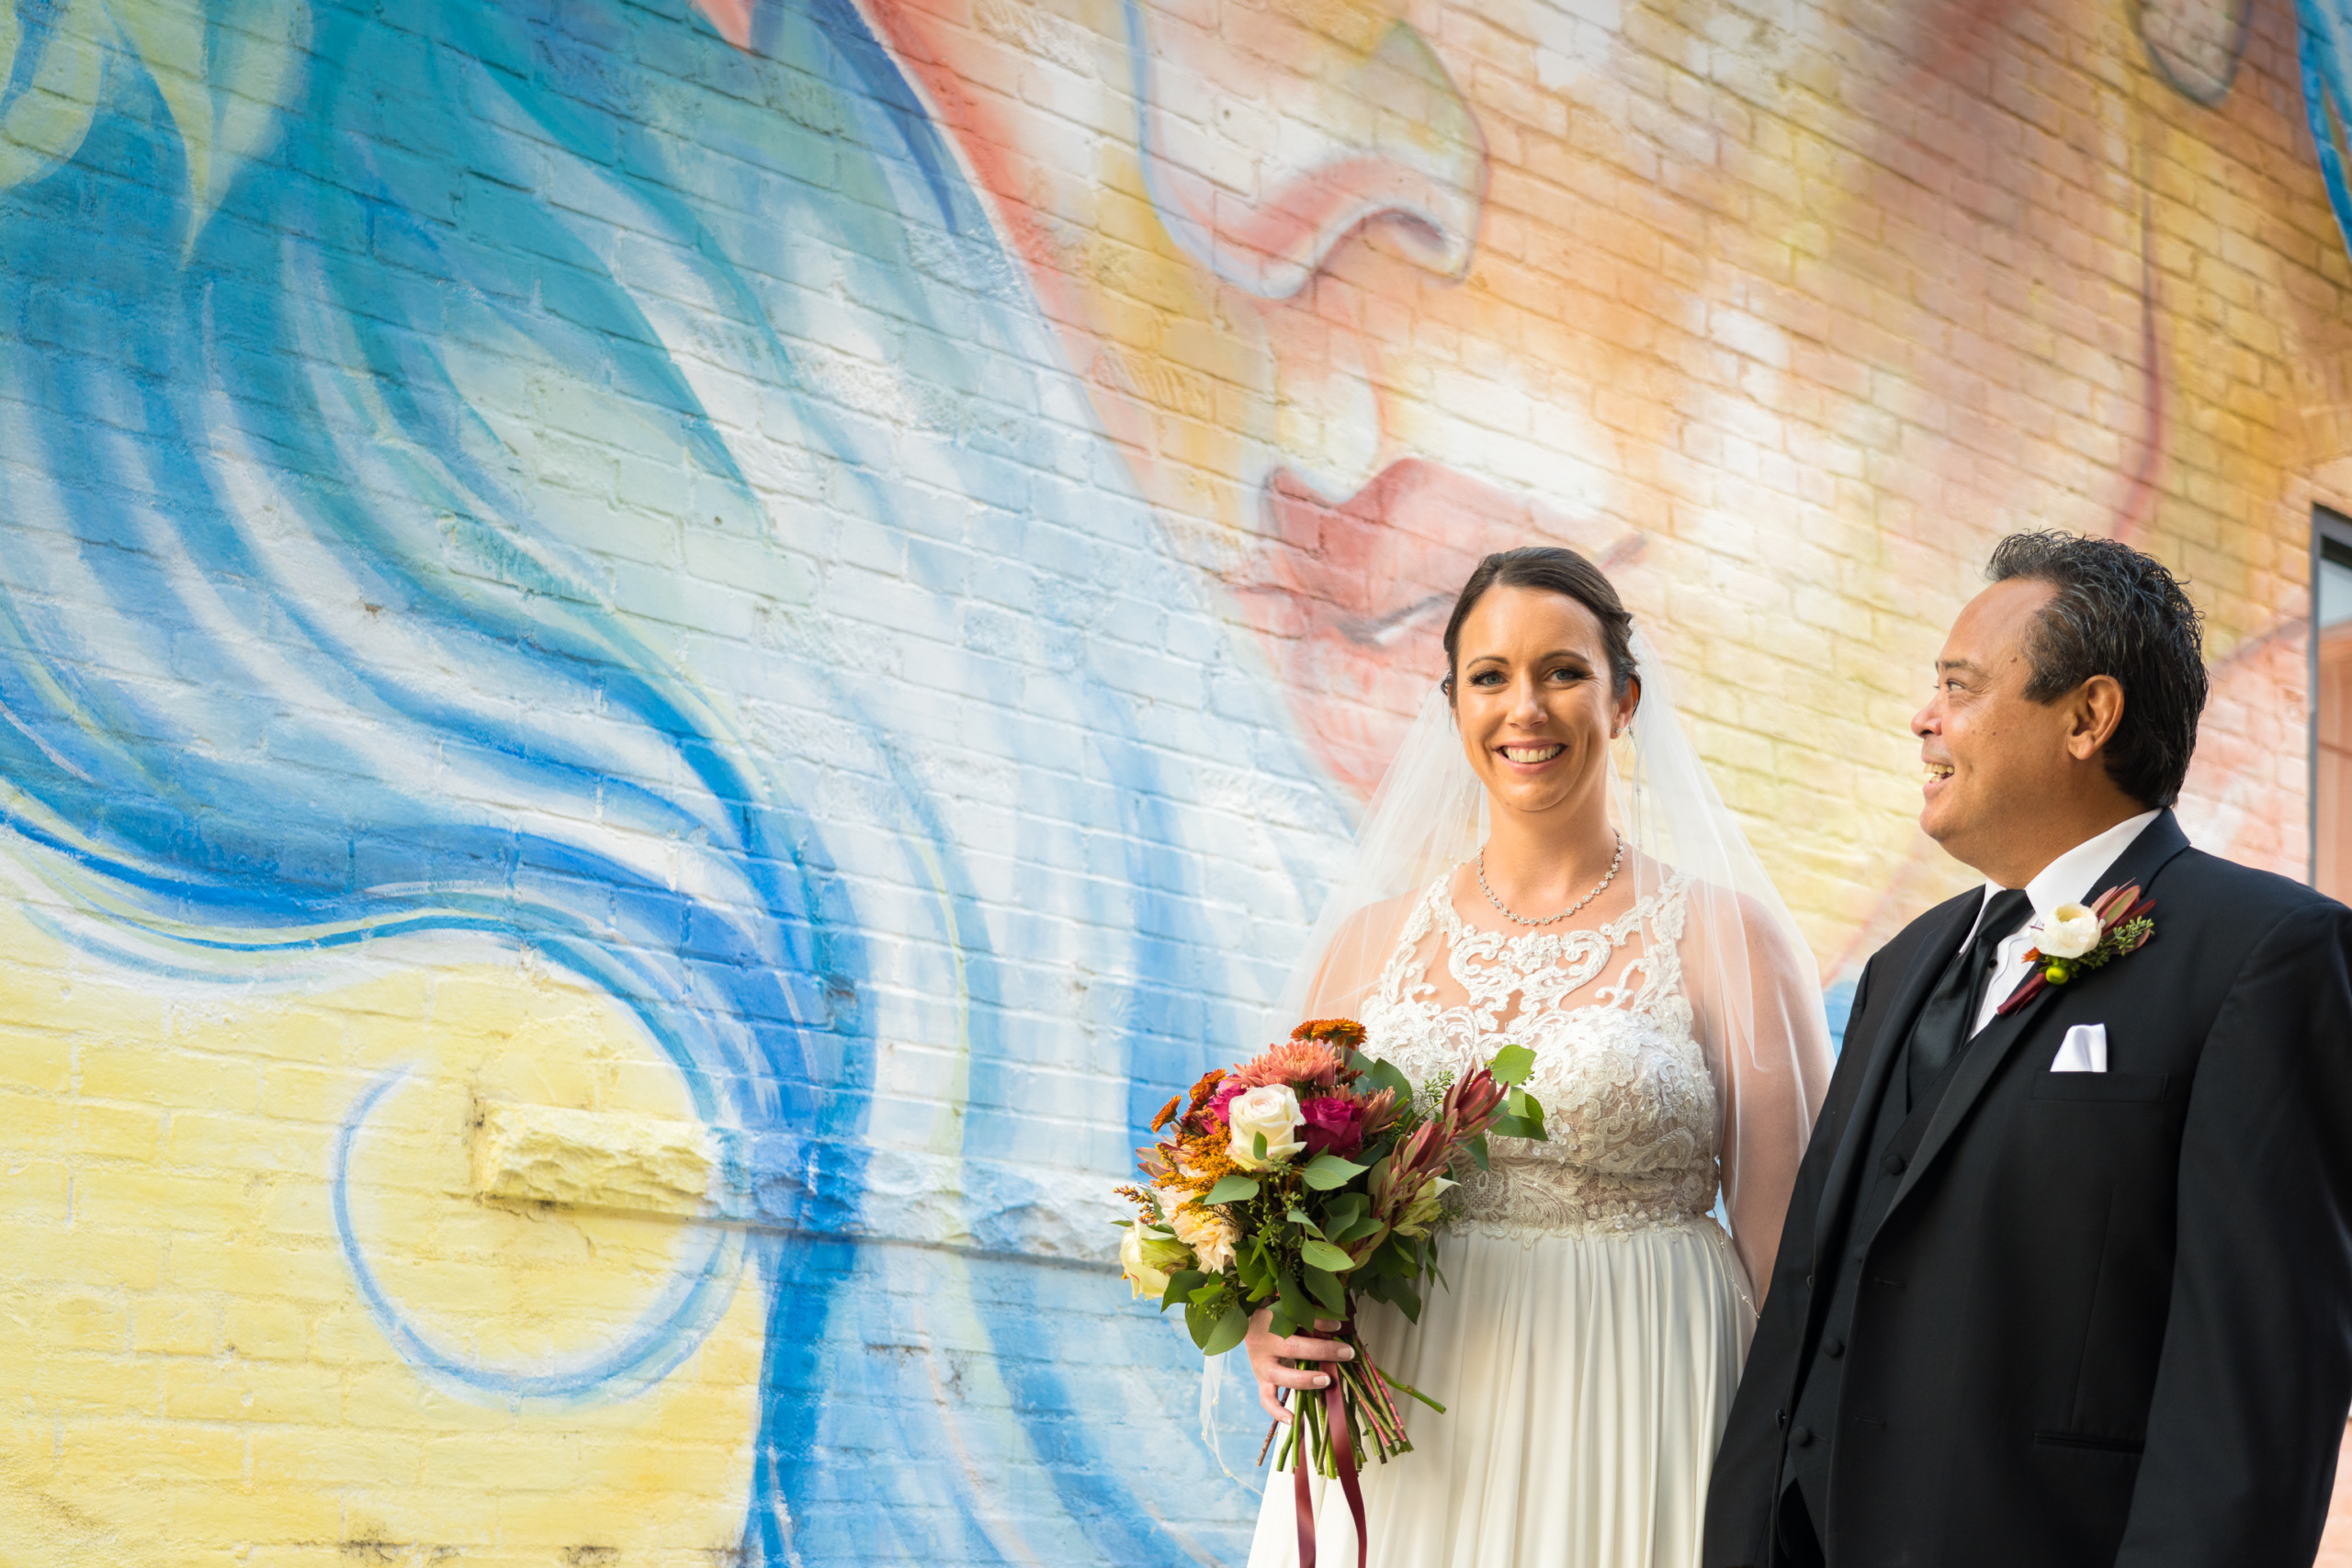 Ladyface Mural in Downtown Loveland with Bride and Groom